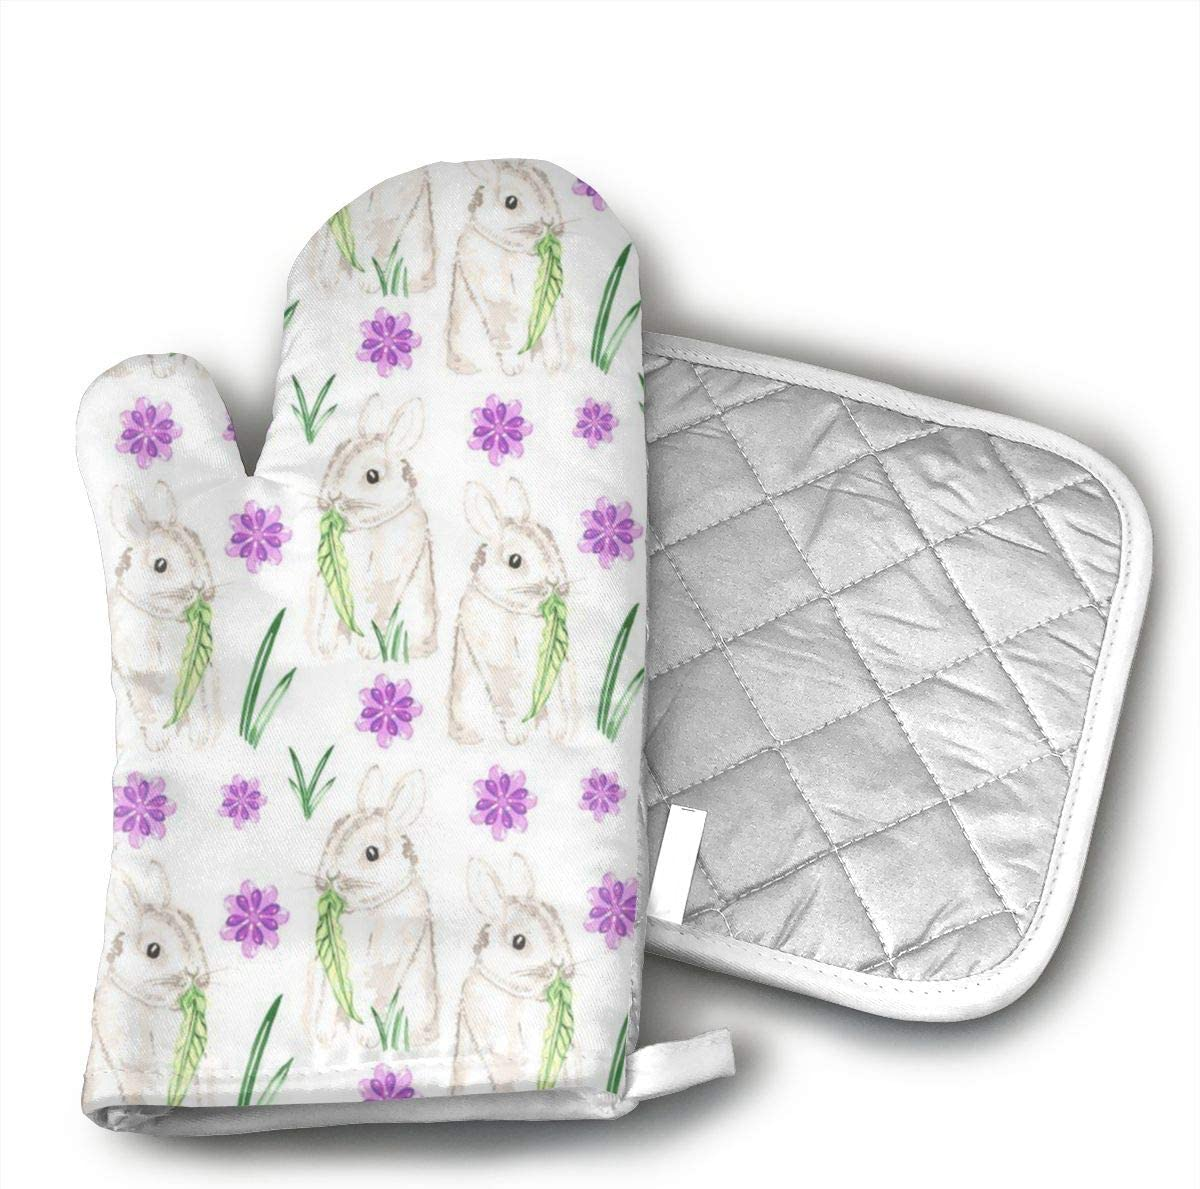 JFNNRUOP Watercolor Baby Bunny Oven Mitts,with Potholders Oven Gloves,Insulated Quilted Cotton Potholders